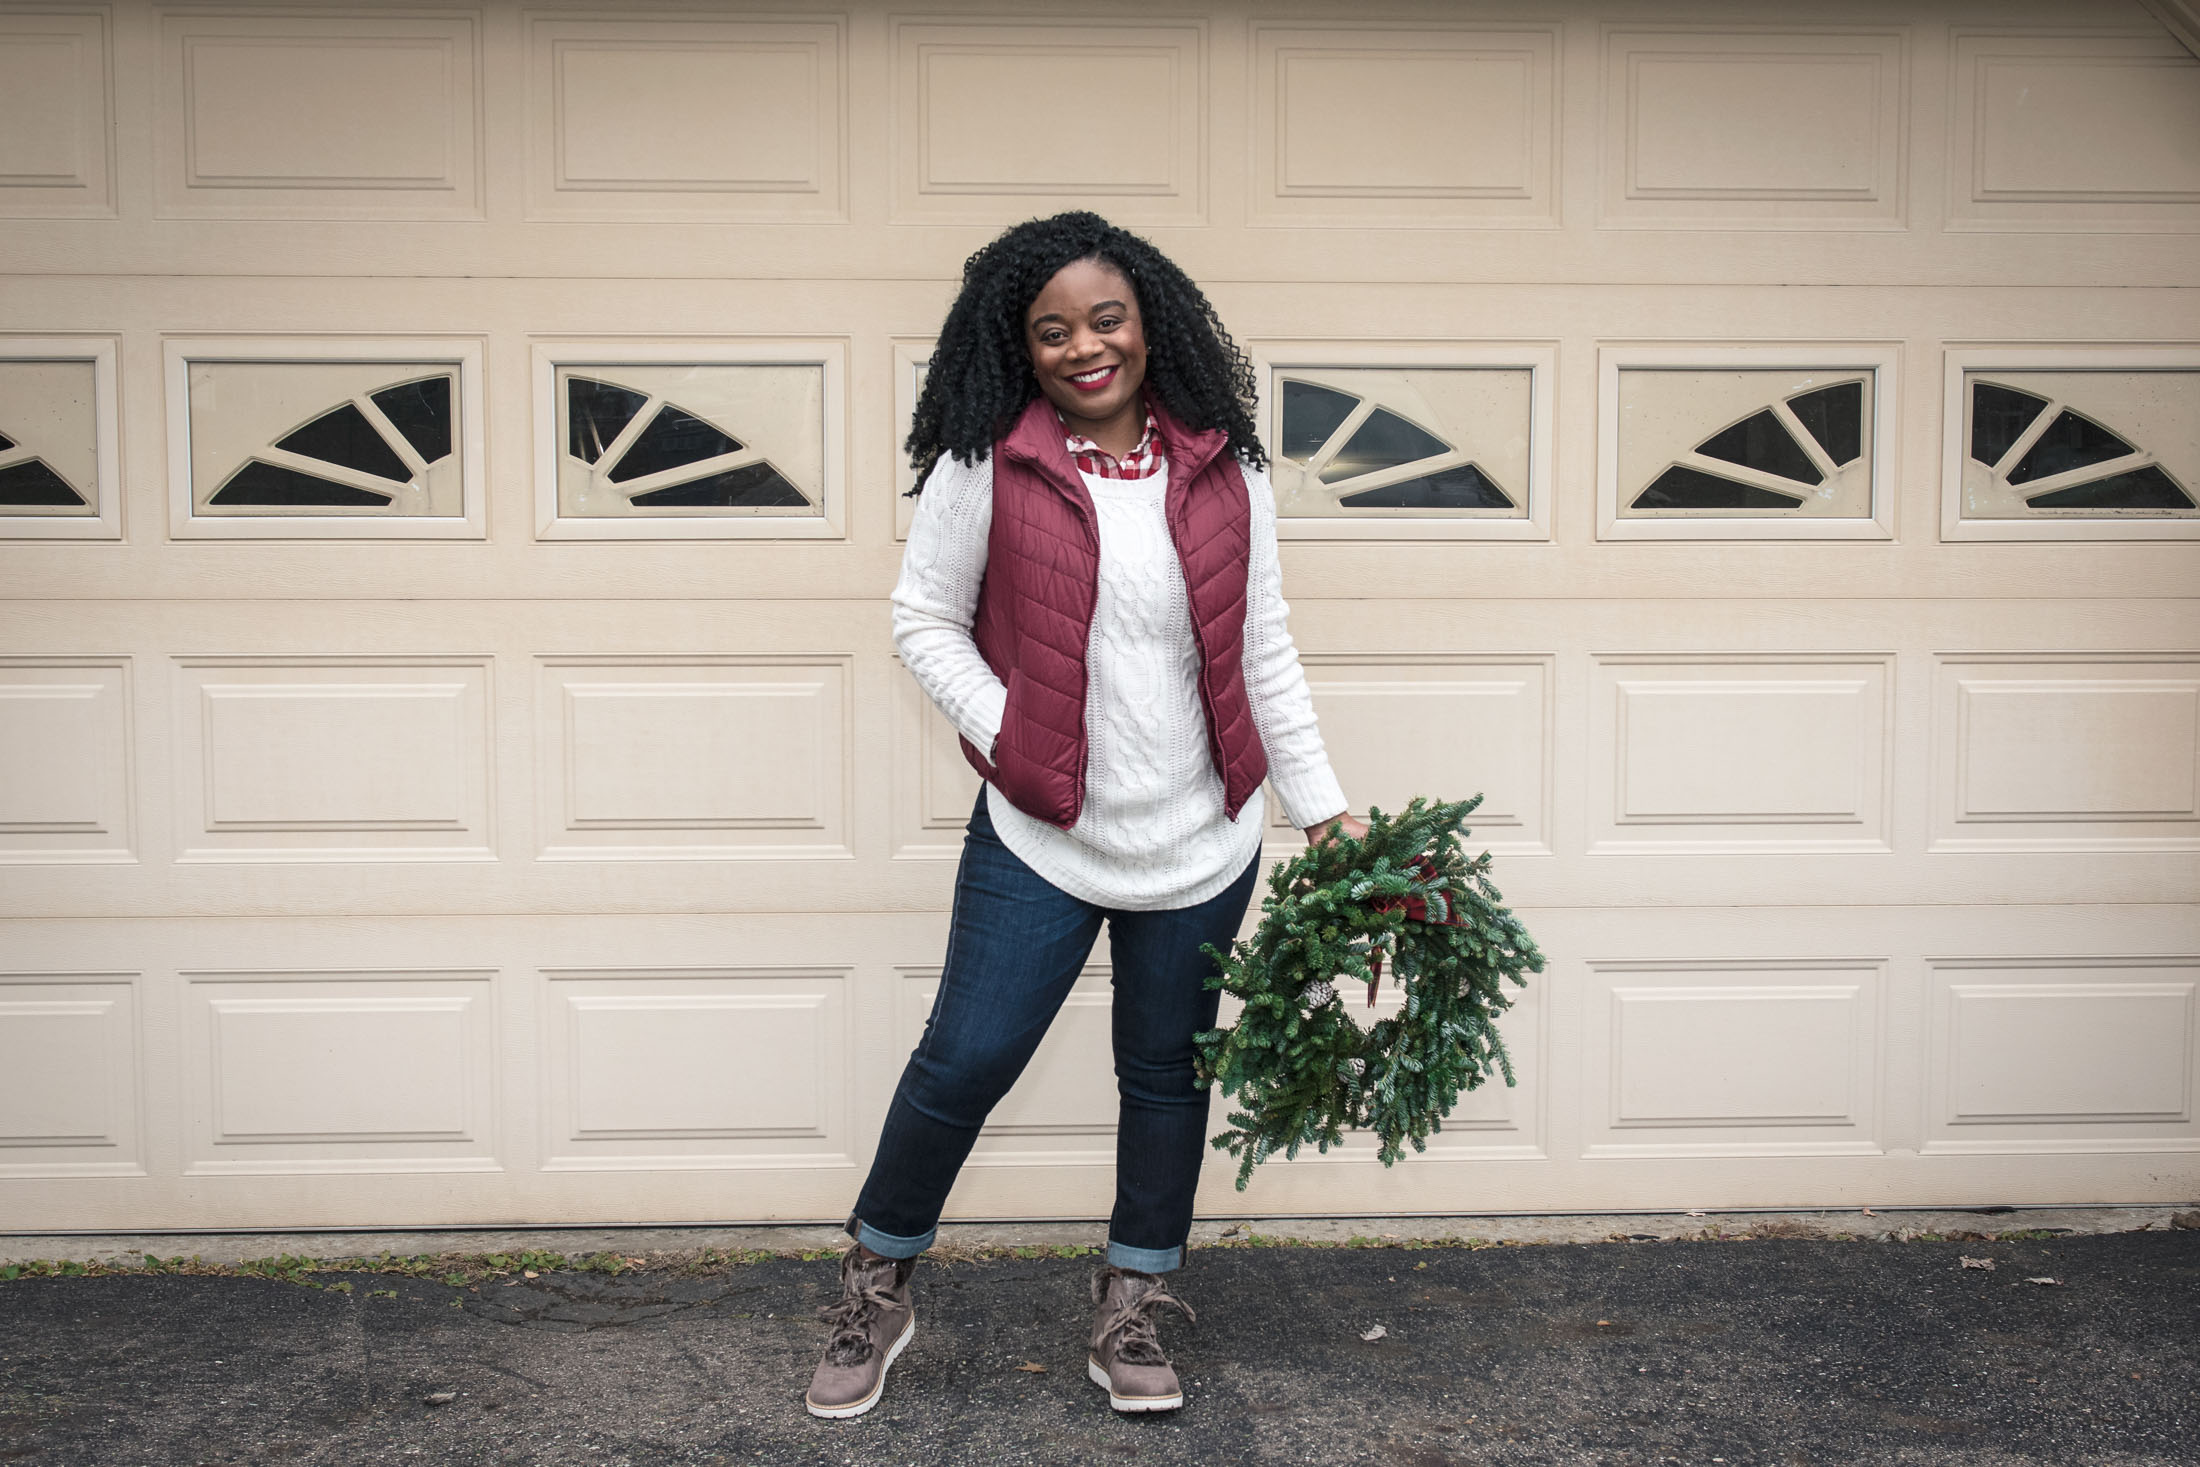 Wreath-hanging, gift-buying, tree trimming, dinner eating & holiday shopping. We've got your cute, festive-casual, go-to holiday outfit right here!